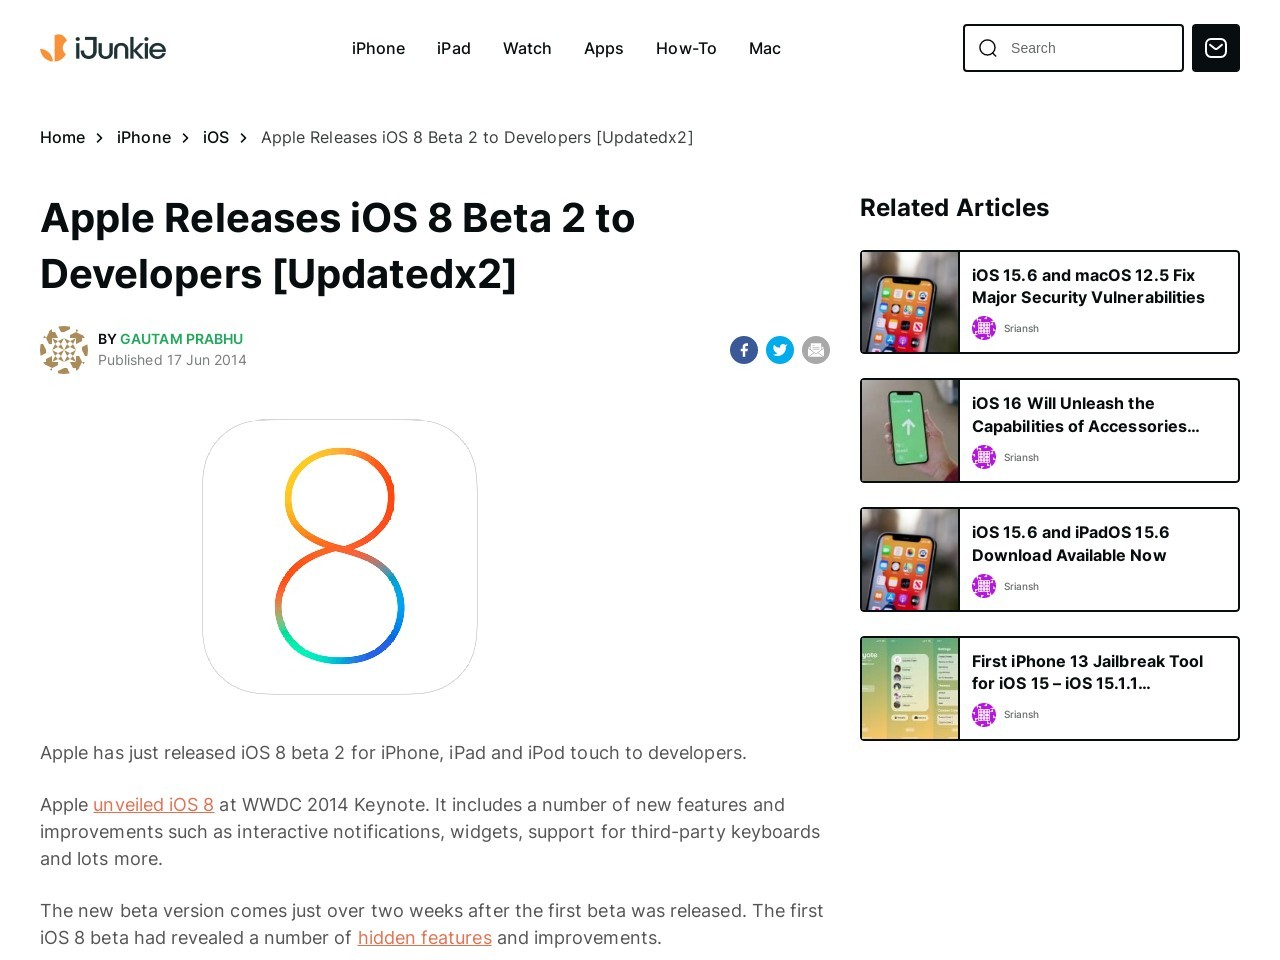 Download iOS 8 Beta 2 for iPhone, iPad and iPod touch